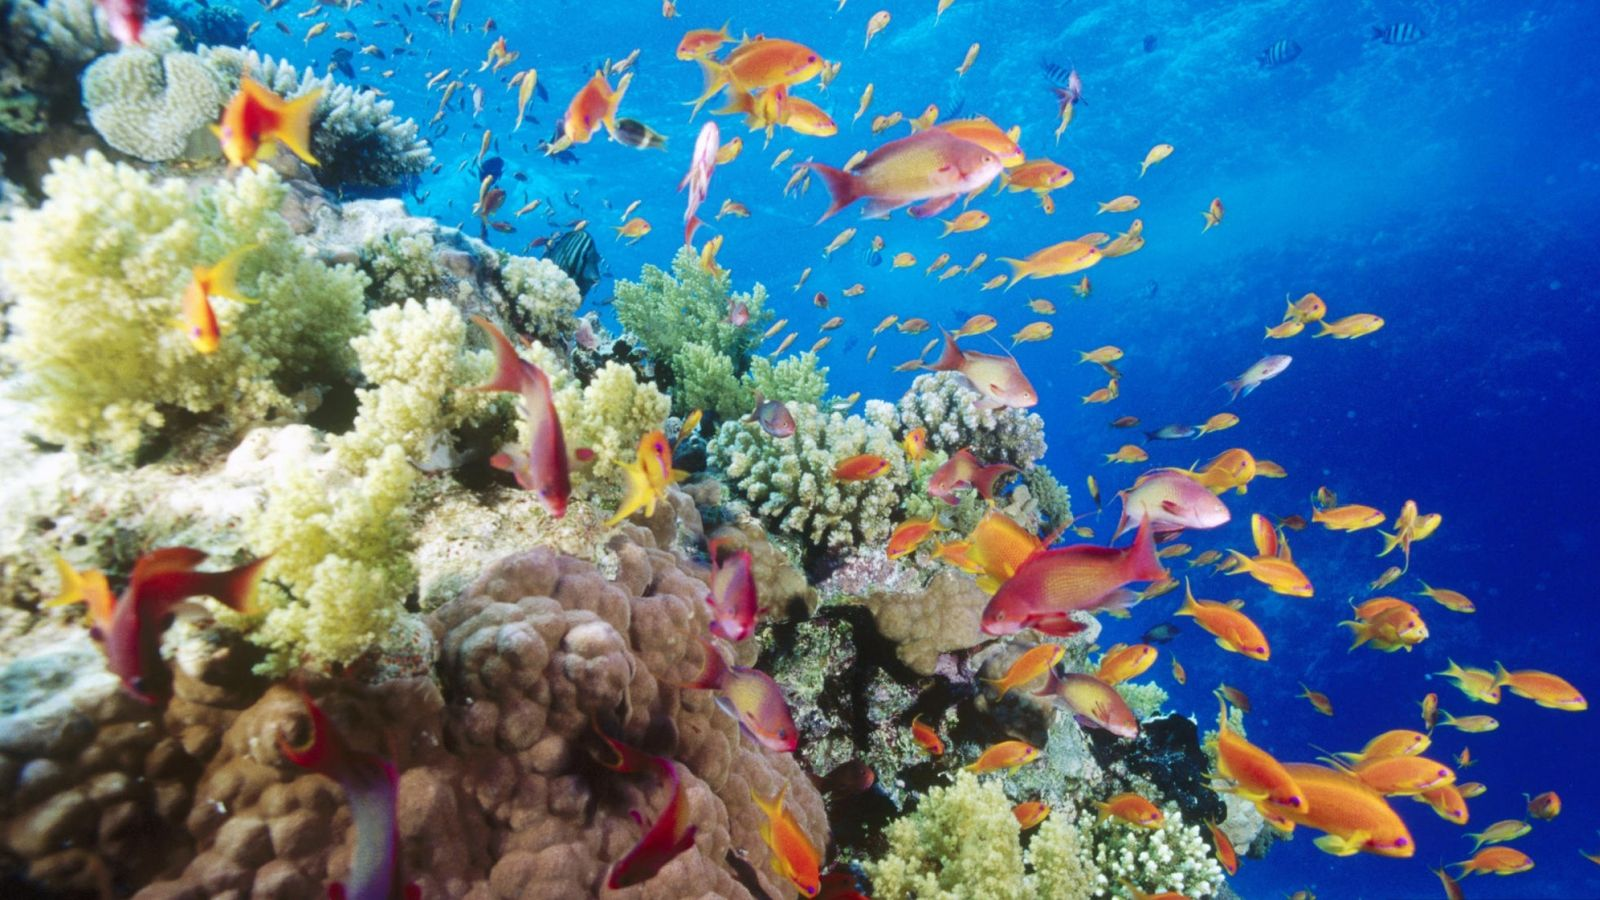 coral_reef_southern_red_sea_near_safaga_egypt-wallpaper-1600x900.jpg